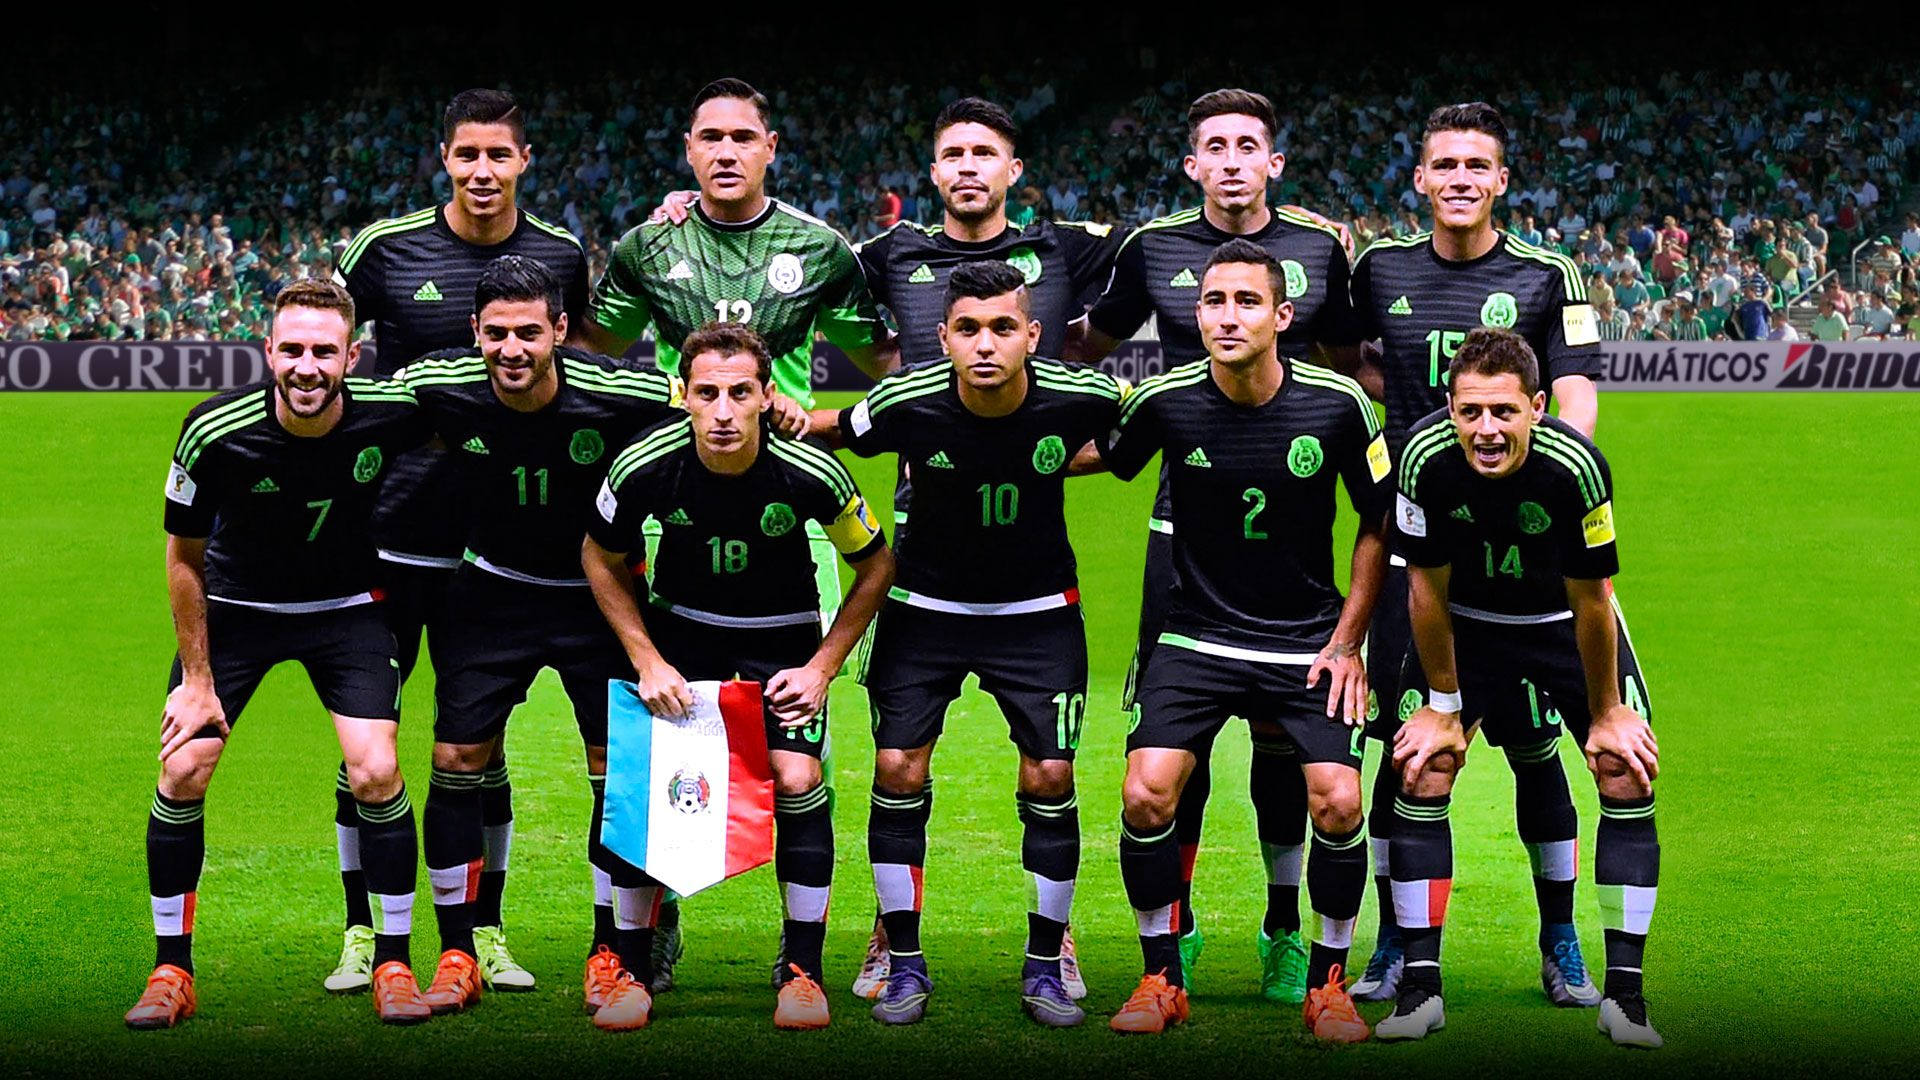 Team Mexico 9ine Femexfut Mexico Wallpaper Team Wallpaper Mexico Team